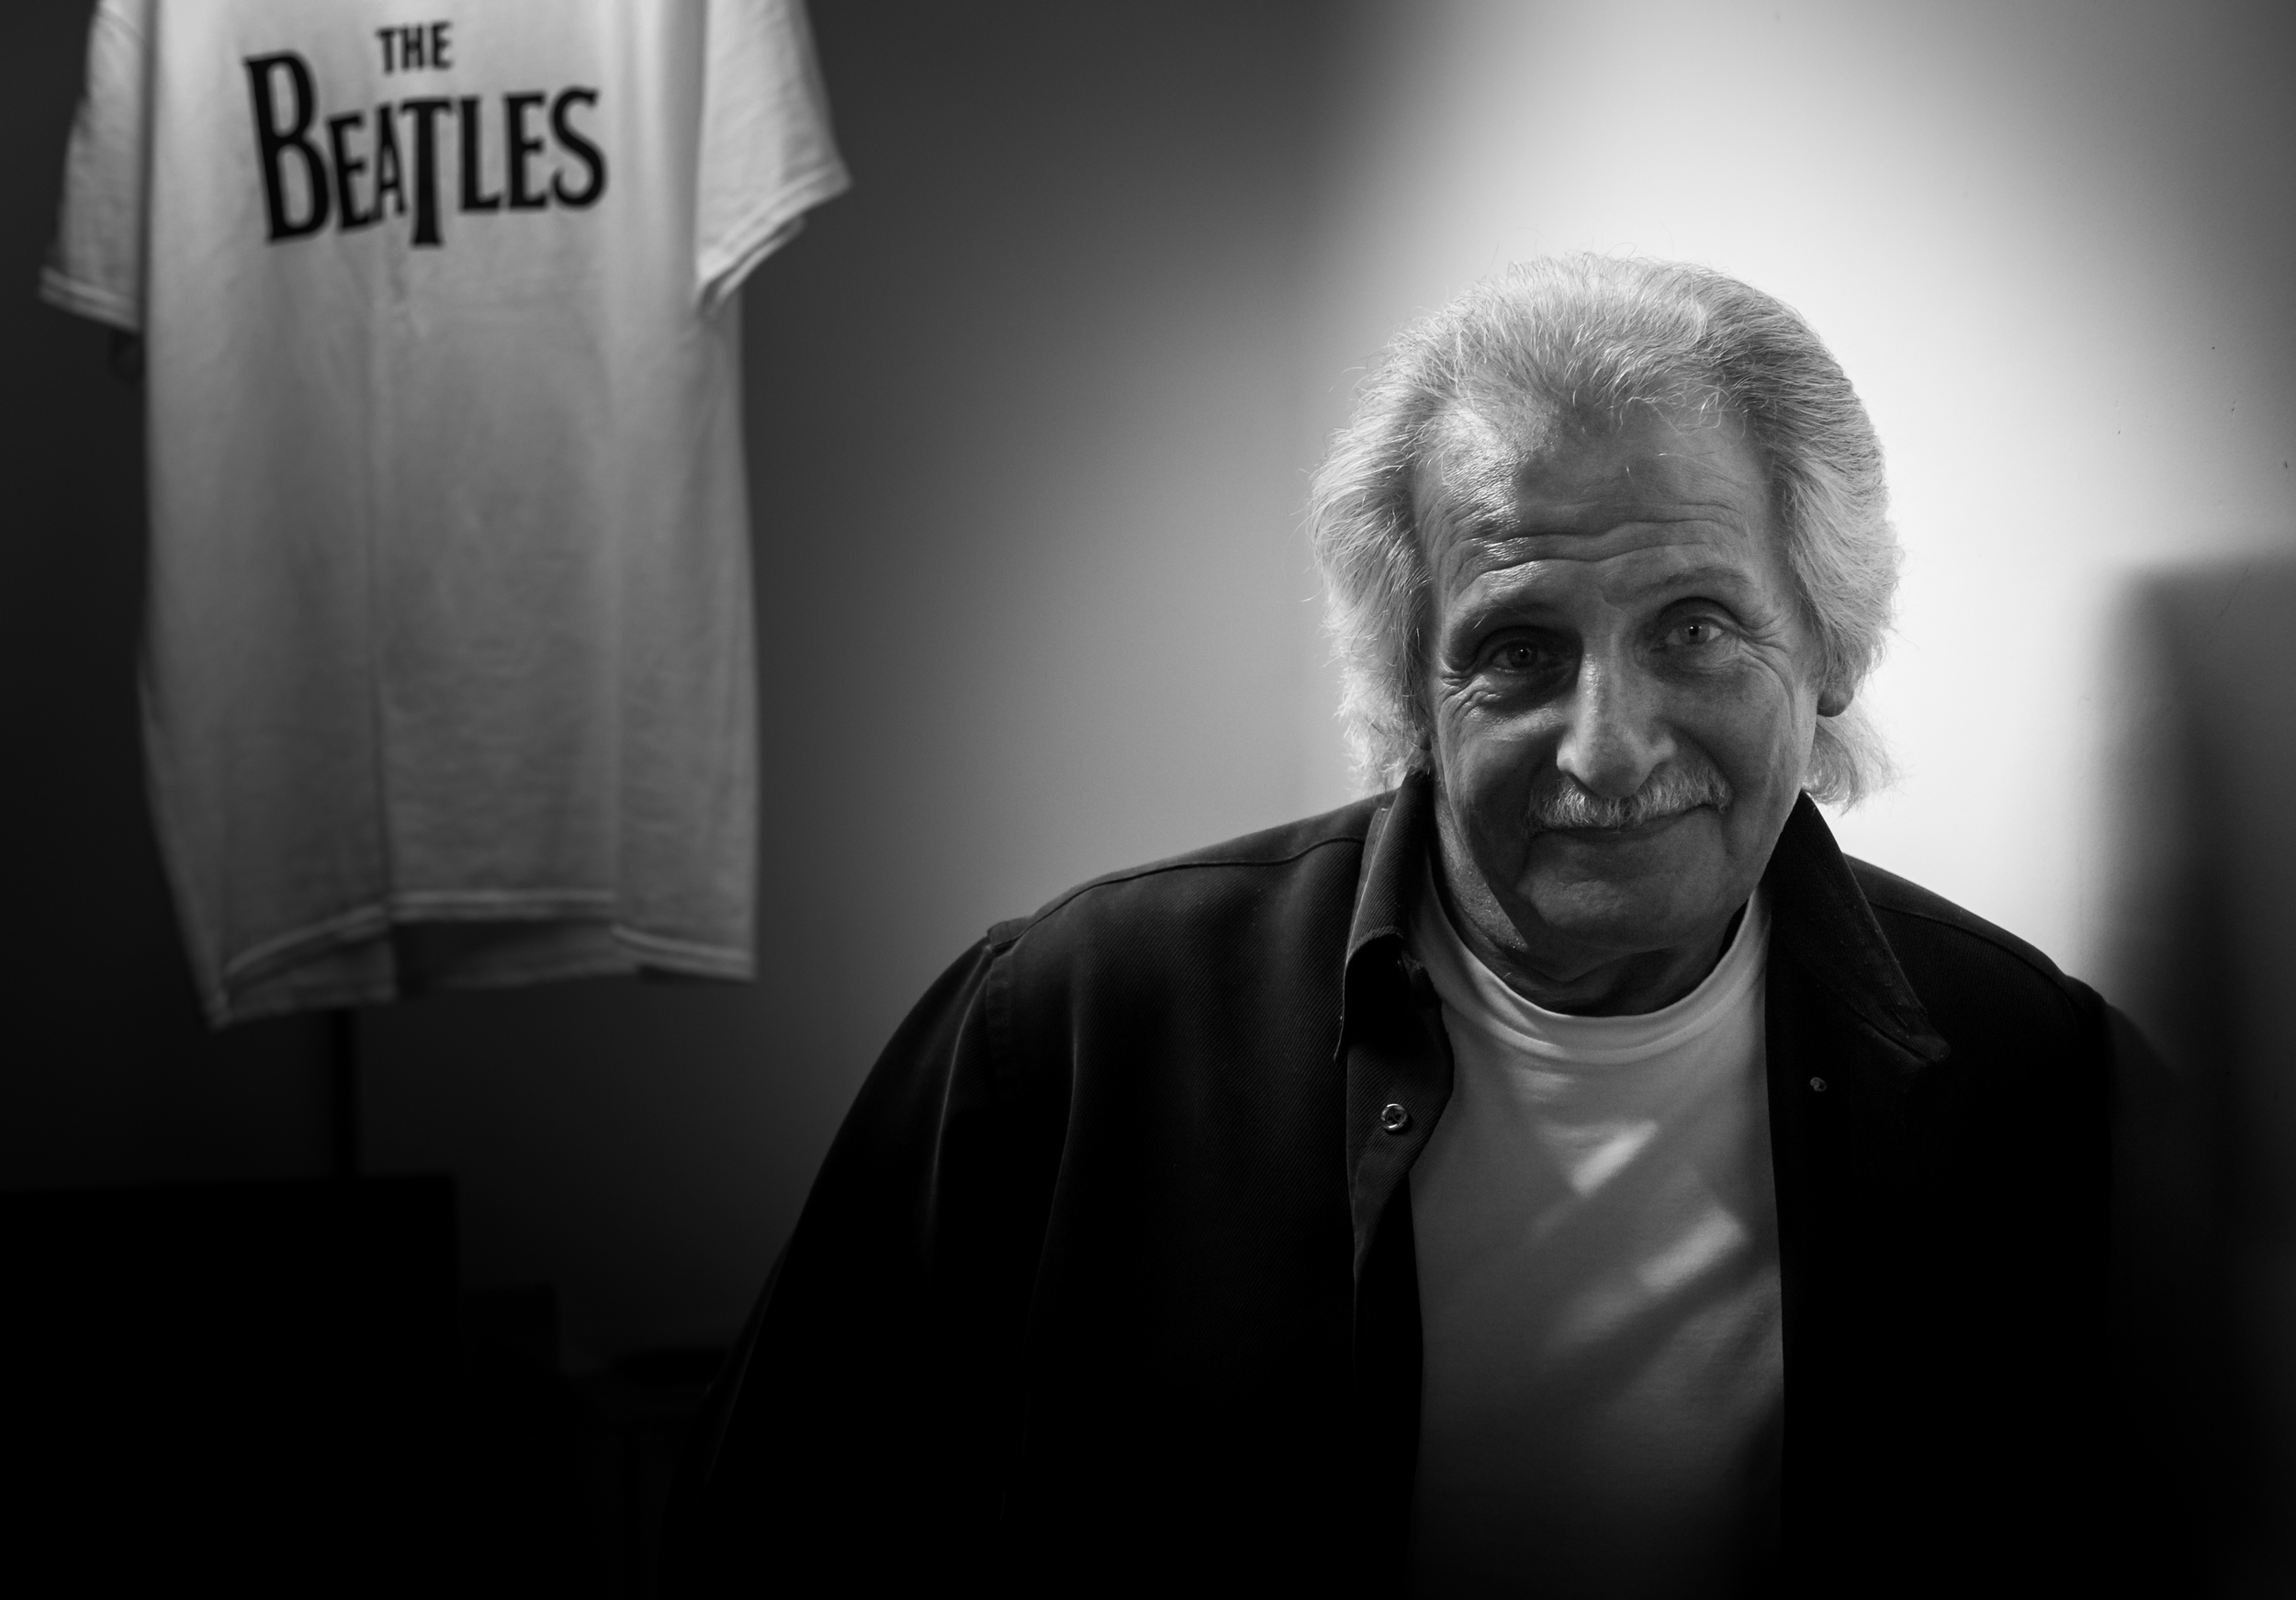 Beatle's drummer, Pete Best